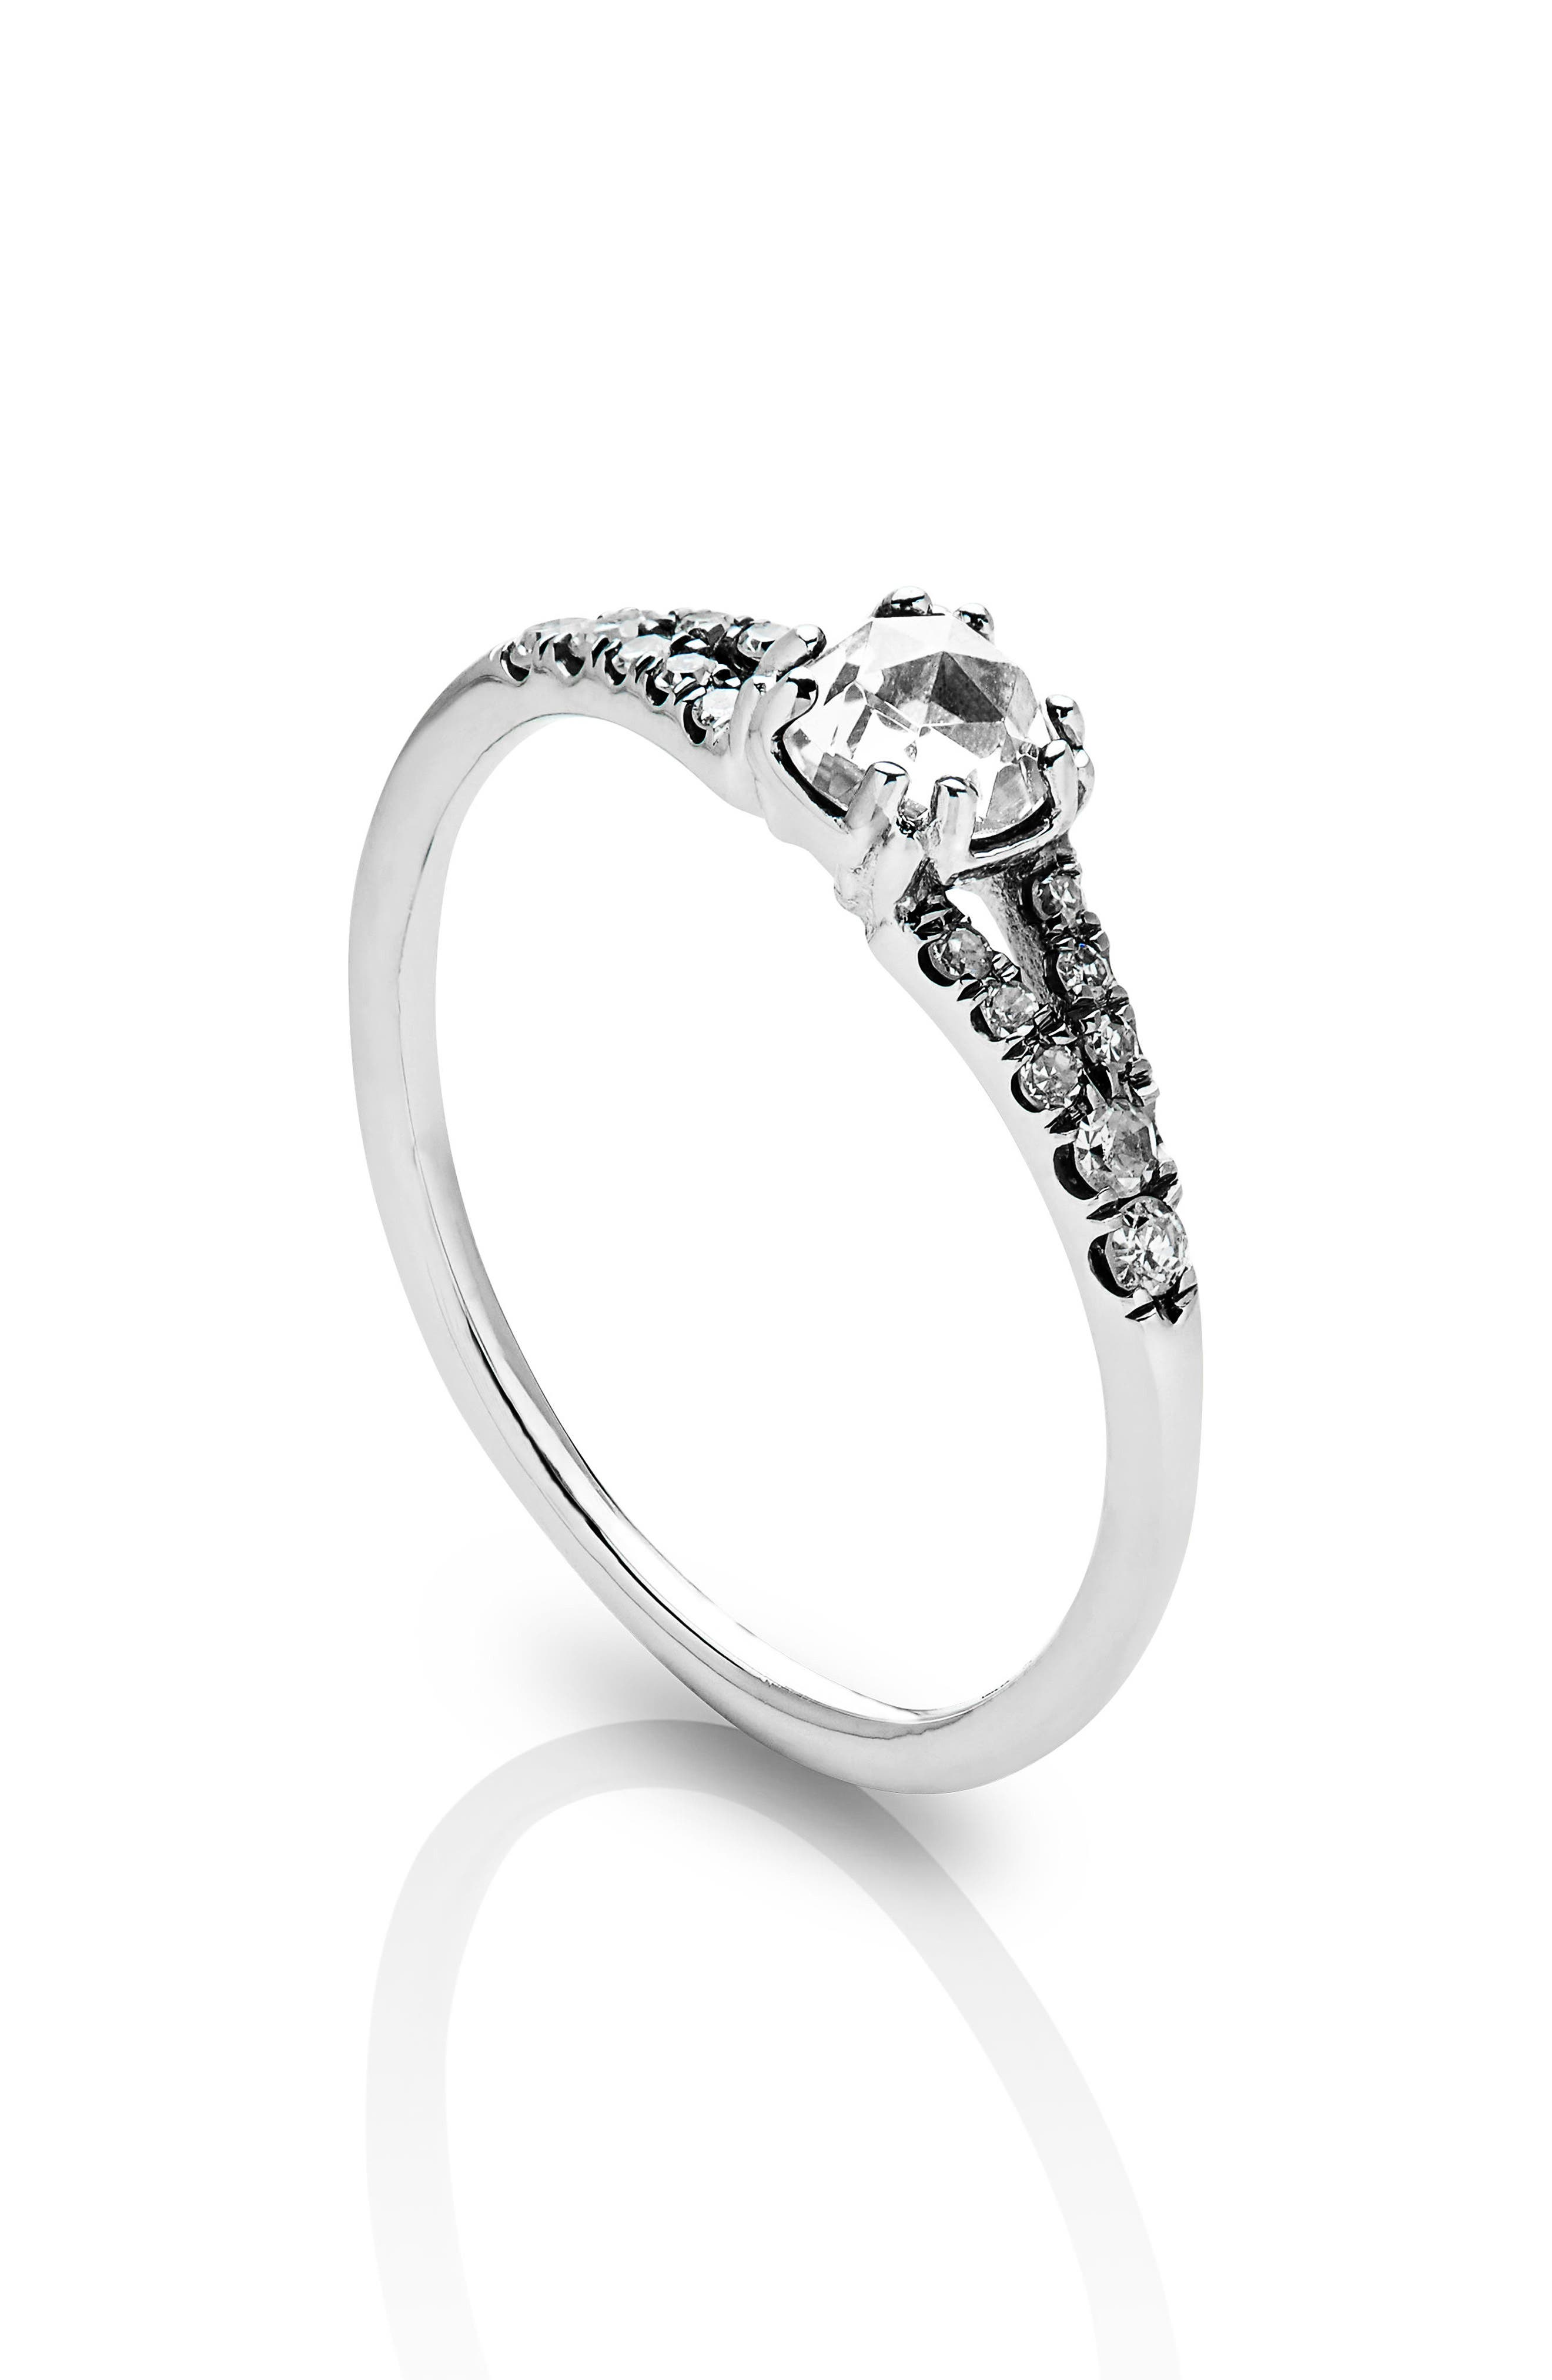 Devotion Solitaire Diamond Ring,                             Alternate thumbnail 2, color,                             WHITE GOLD